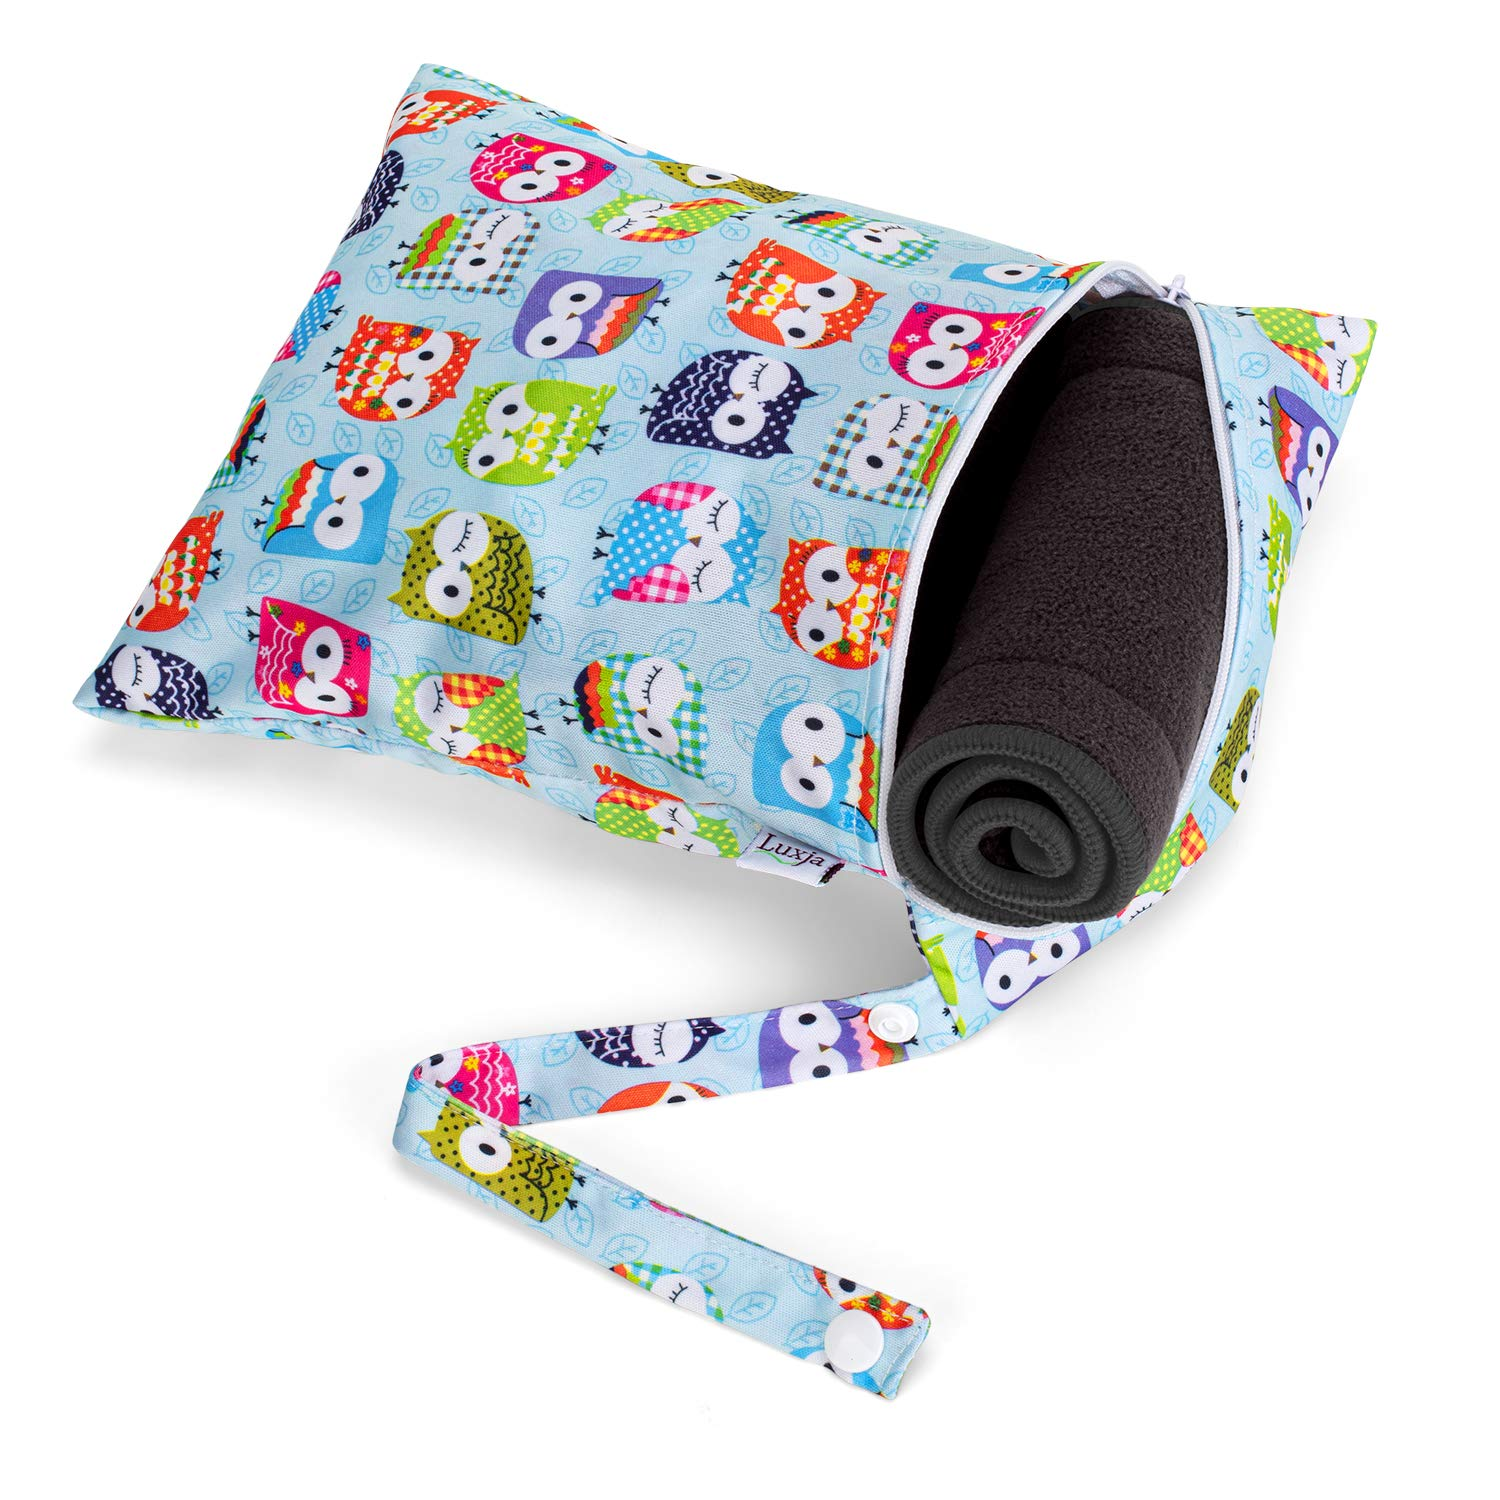 4 Pcs Cloth Diaper Liners + 1 Storage Bag Luxja Cloth Diaper Inserts 5 Layers of Bamboo Charcoal Inserts